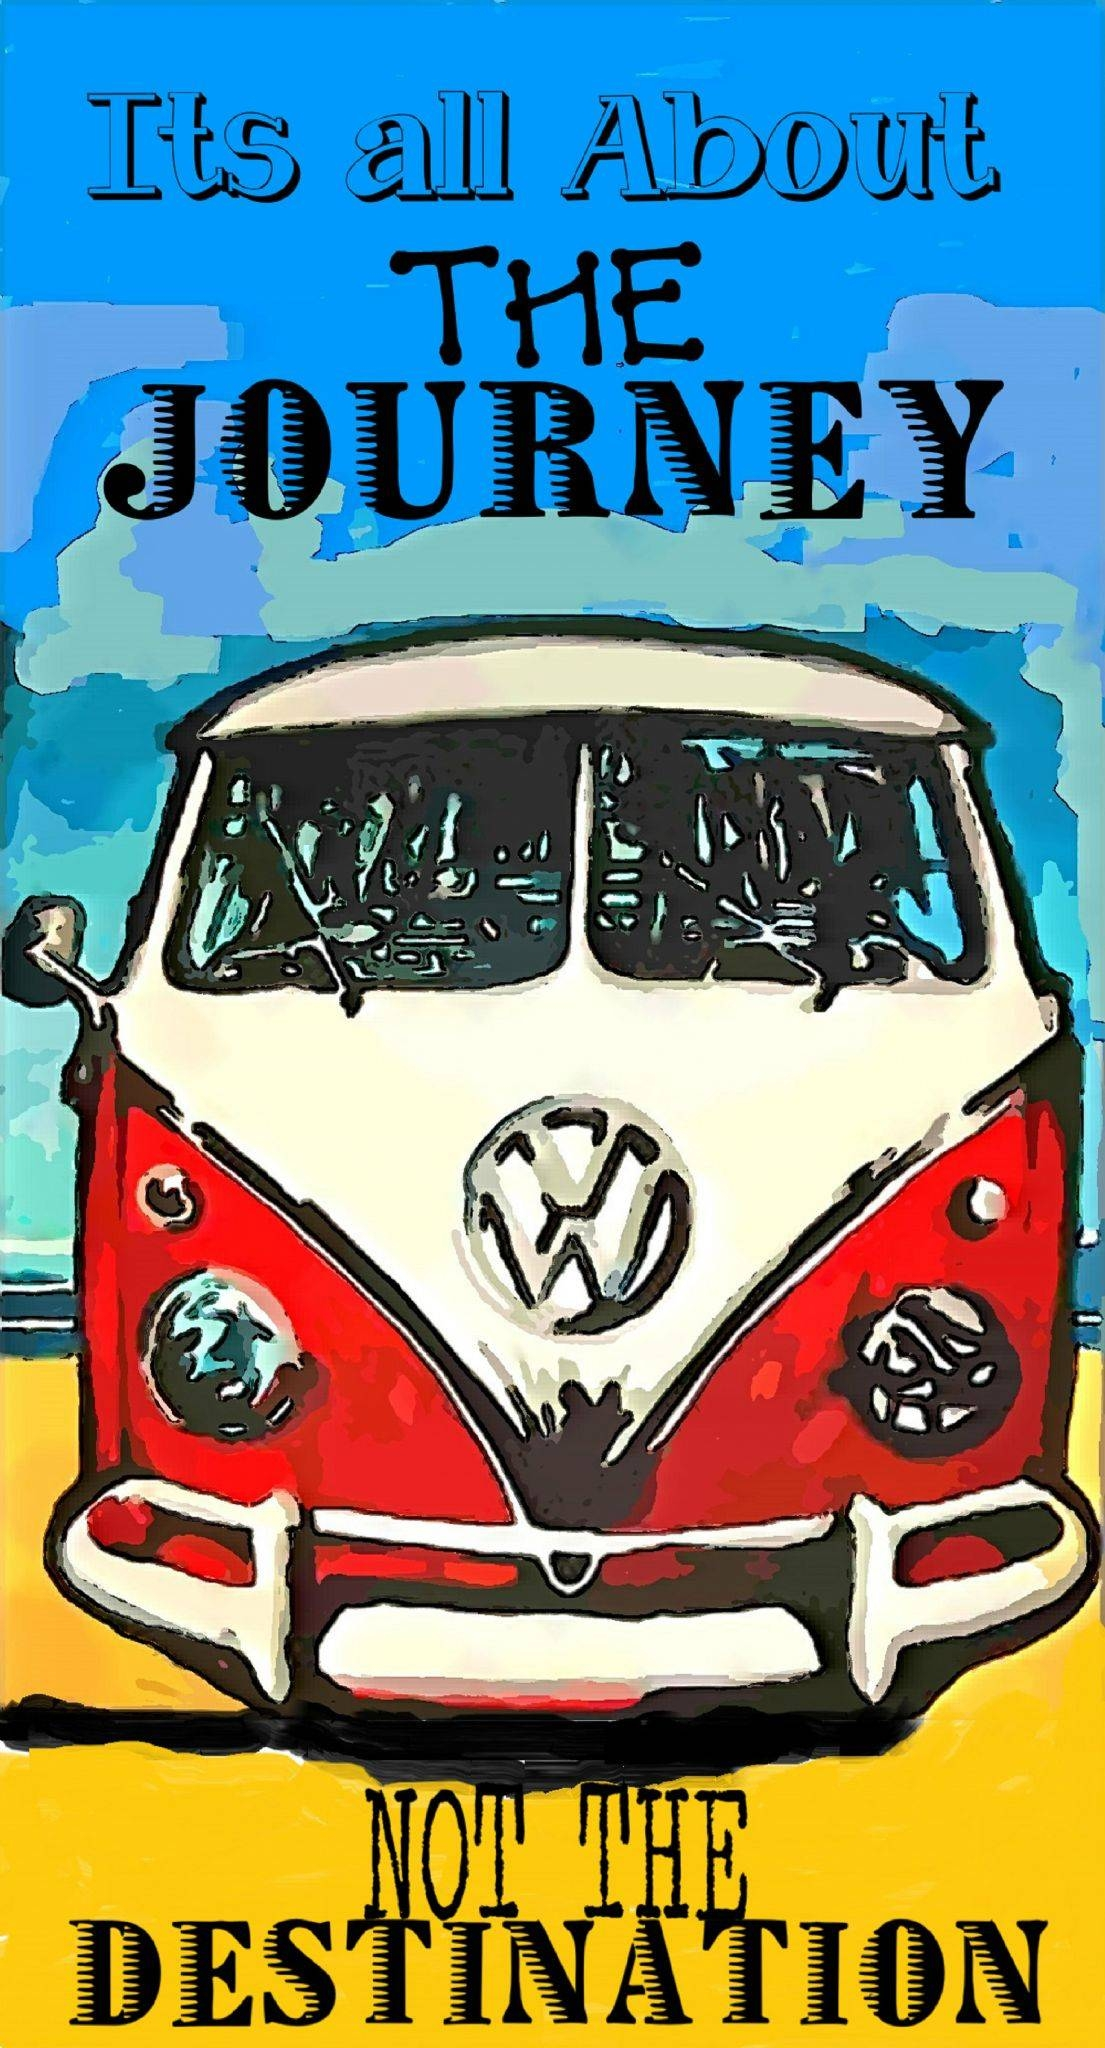 Pop Art Vw Camper Inspirational Quote Vintage Style Metal Wall Plaque Throughout Most Popular Campervan Metal Wall Art (View 12 of 20)